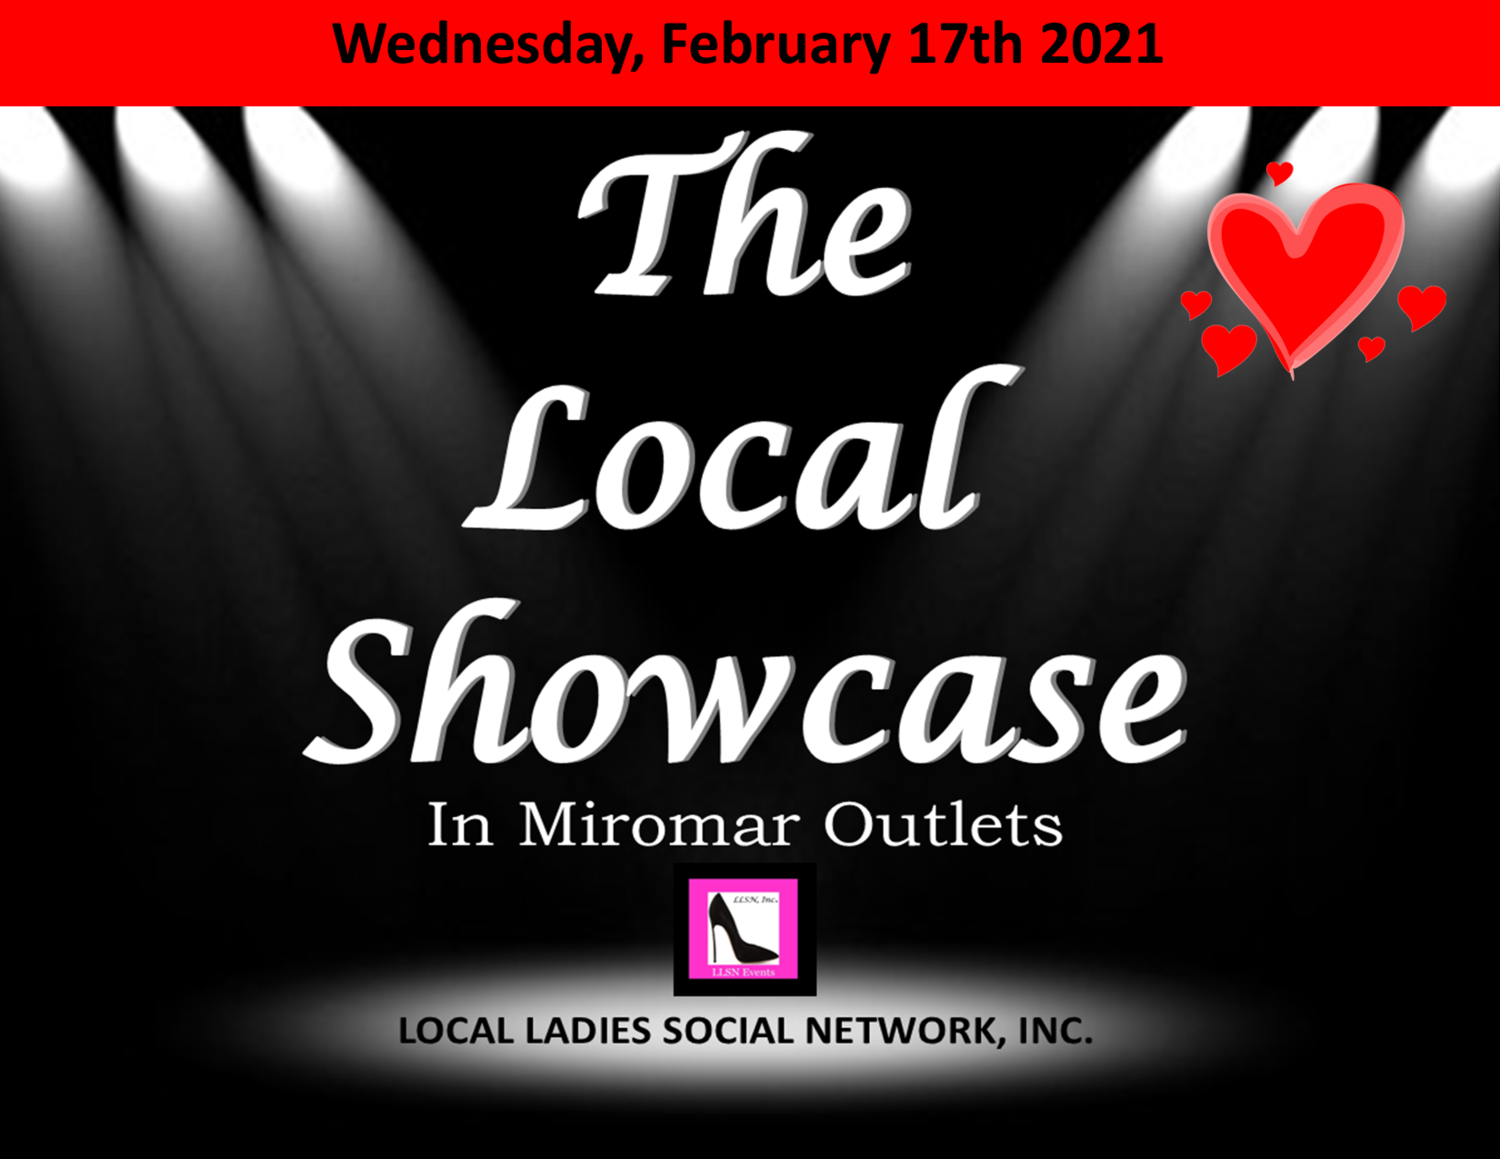 Wednesday, February 17th 11am-7pm